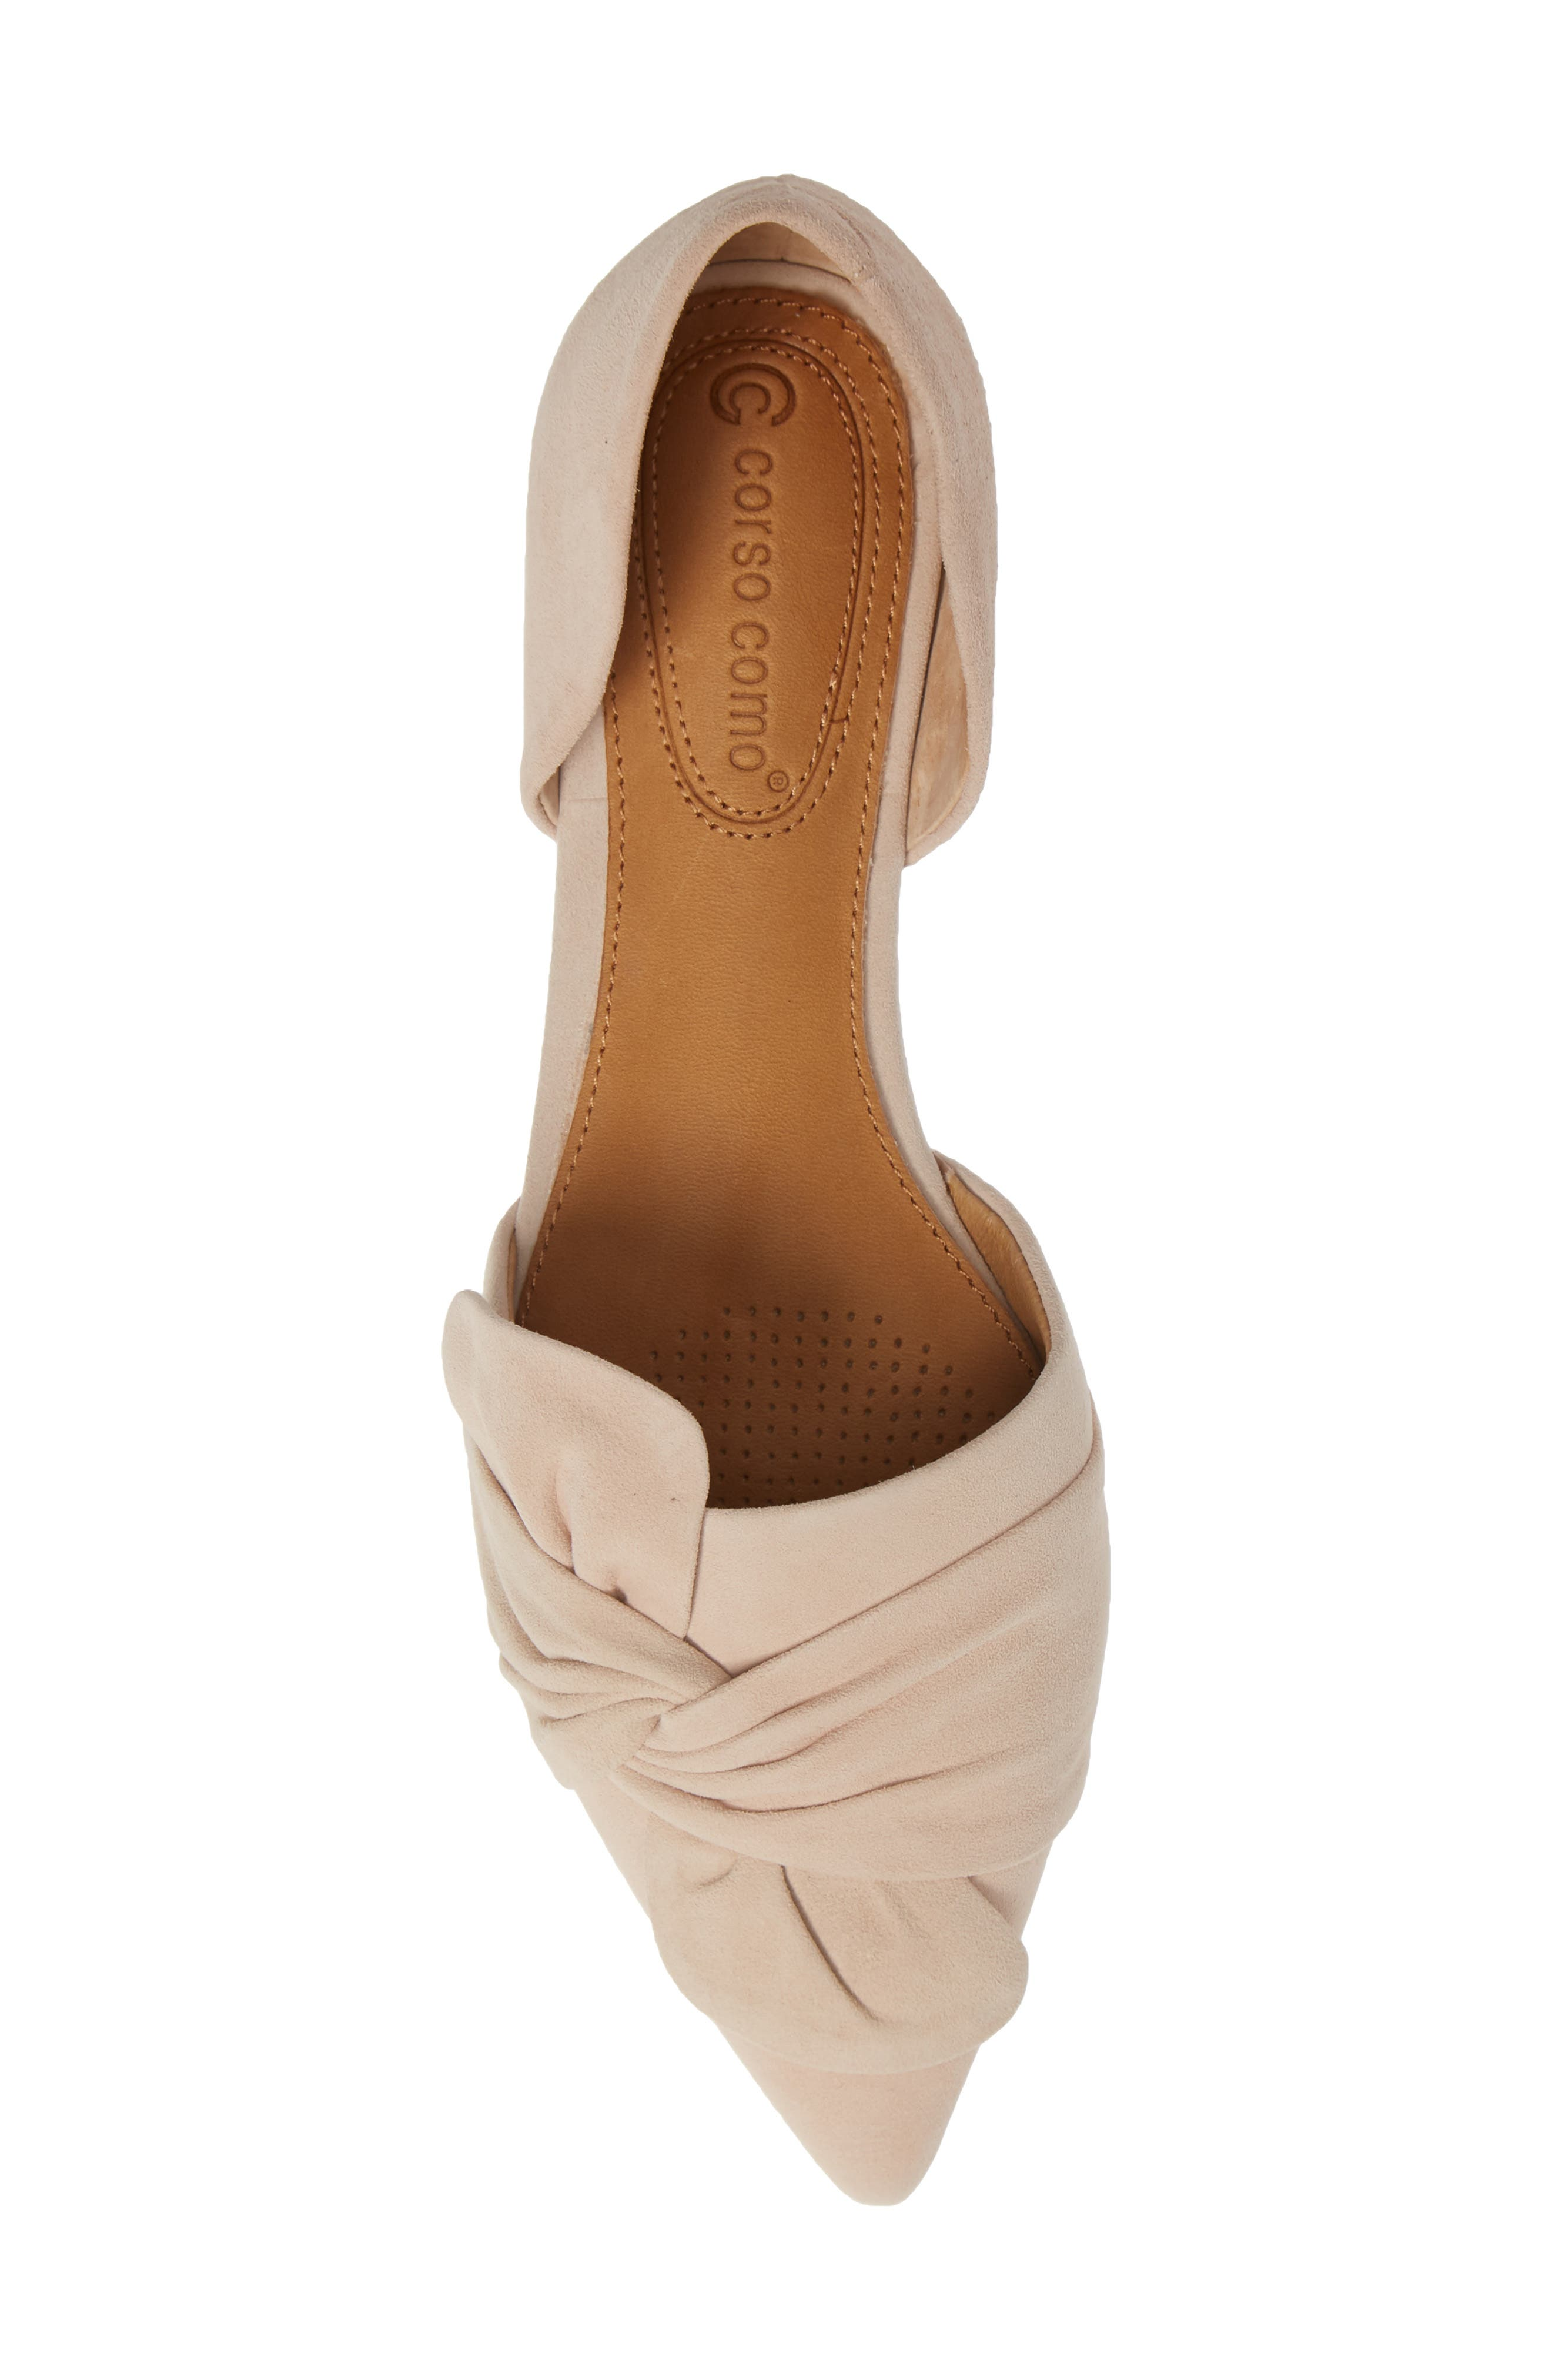 Mollie d'Orsay Flat,                             Alternate thumbnail 4, color,                             Nude Suede